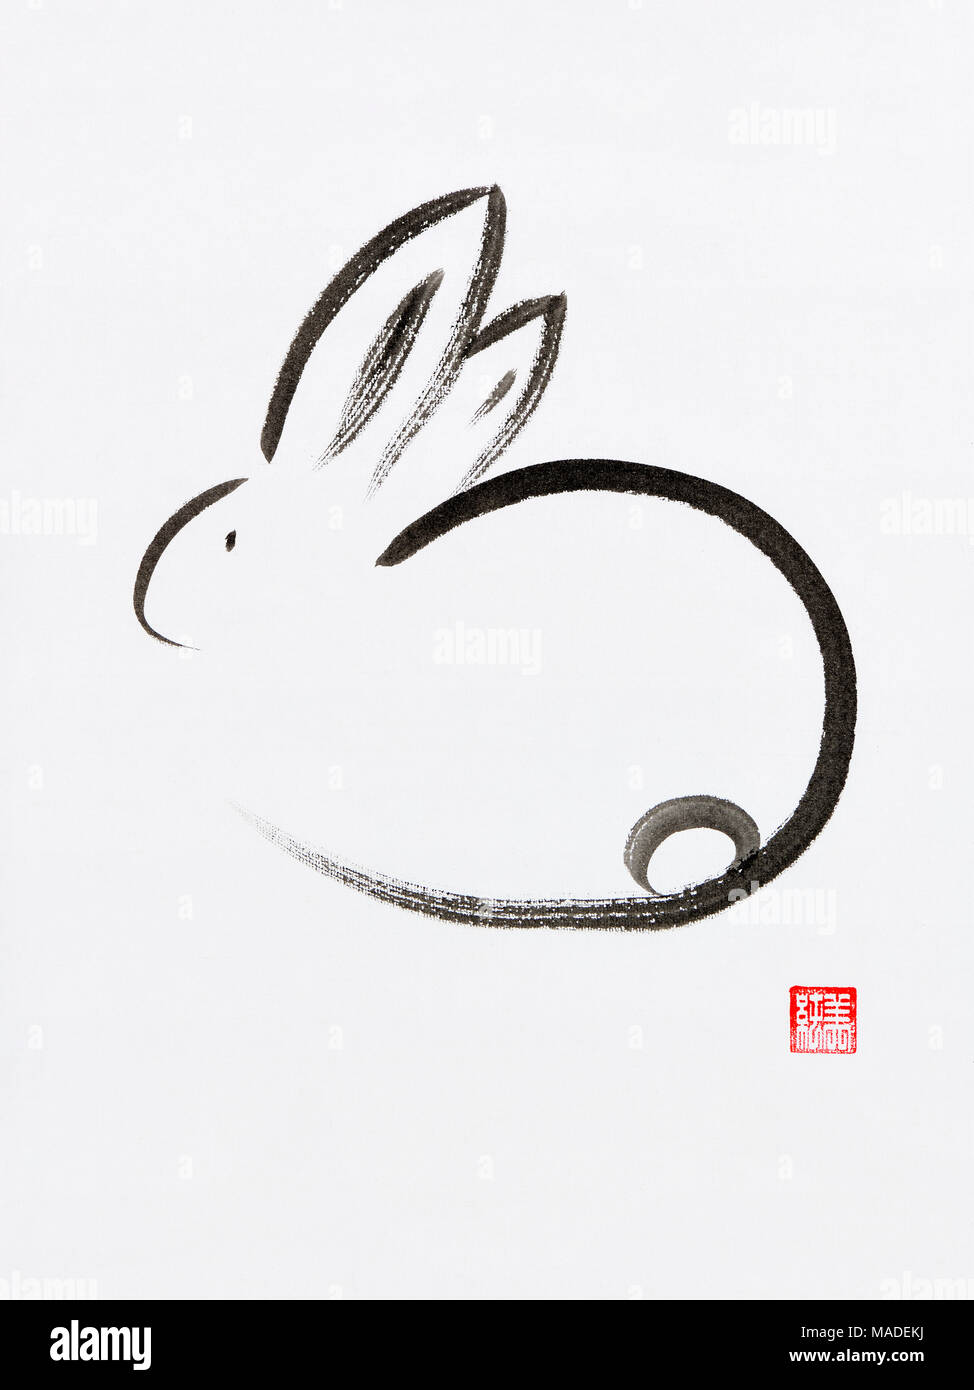 Cute minimalistic bunny artistic oriental style illustration, Japanese Zen Sumi-e ink painting on white rice paper background Stock Photo